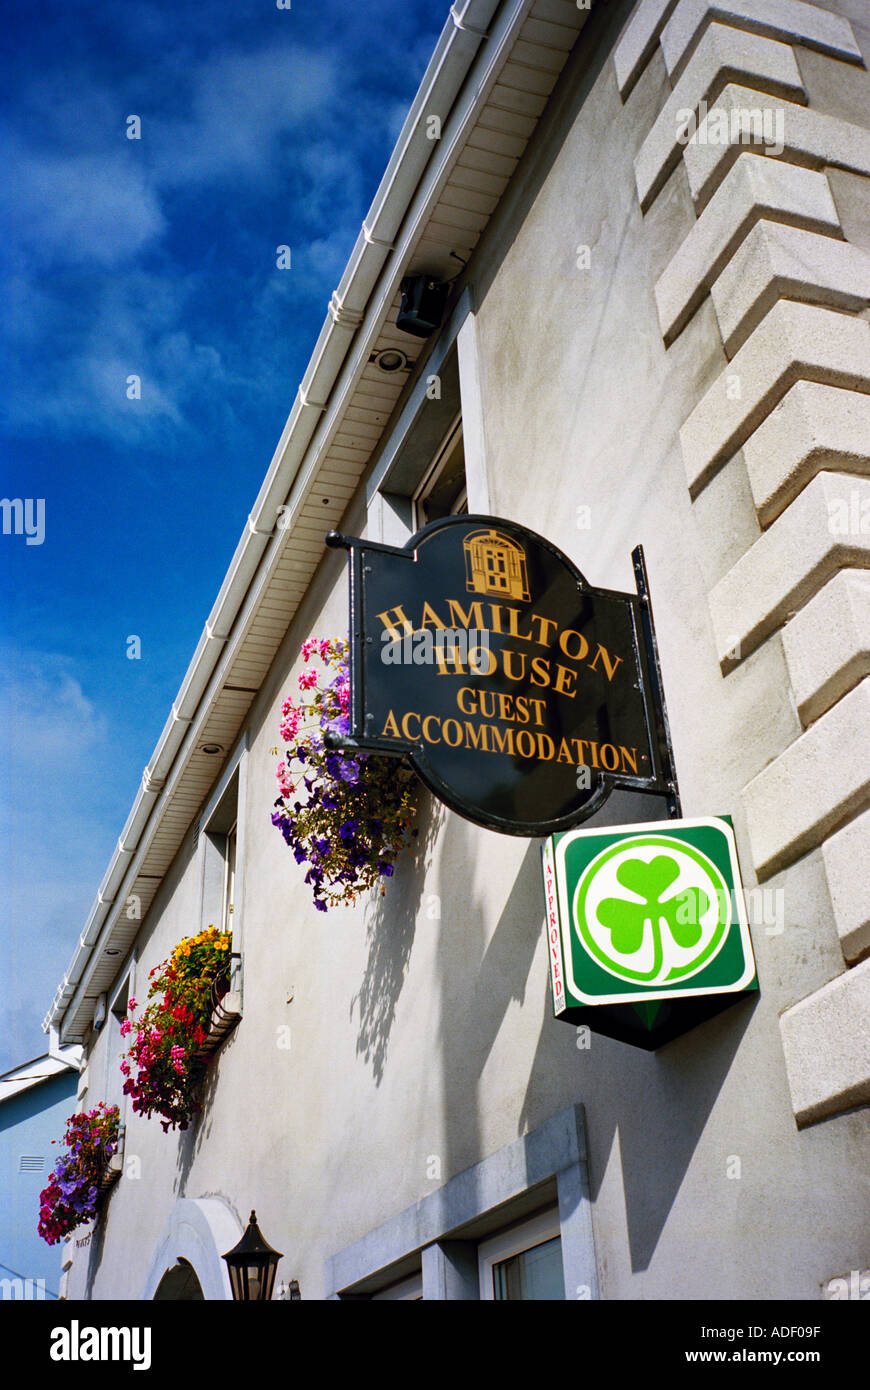 A bed and breakfast house in Ireland displaying the distinctive Bord Failte shamrock sign denoting it's official status - Stock Image